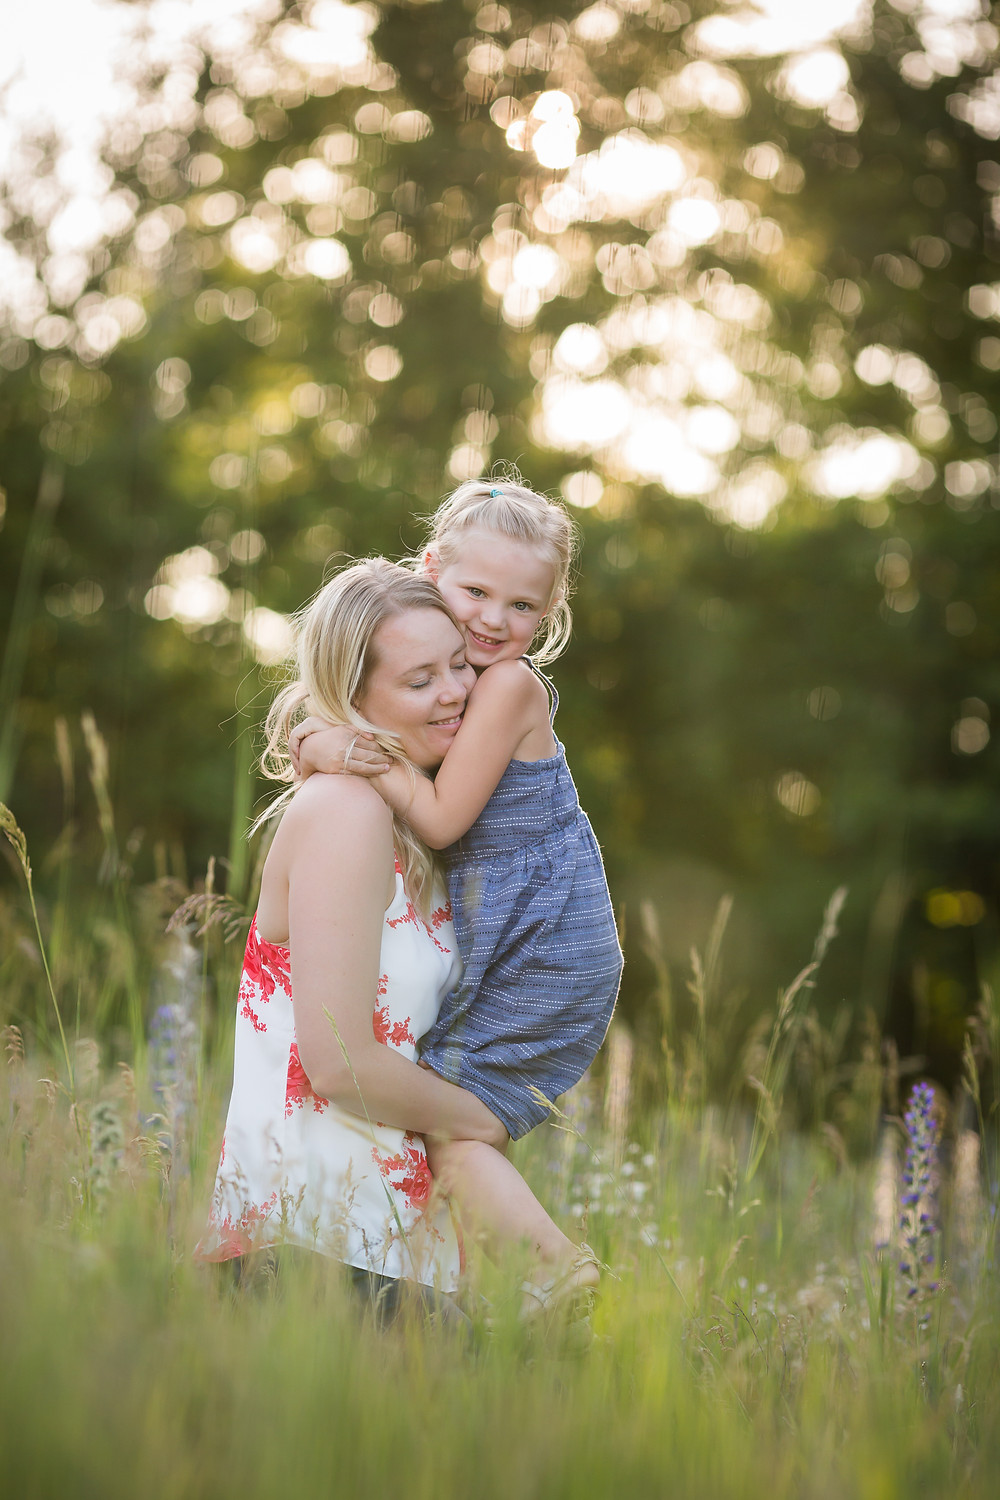 mom and daughter hugging in field